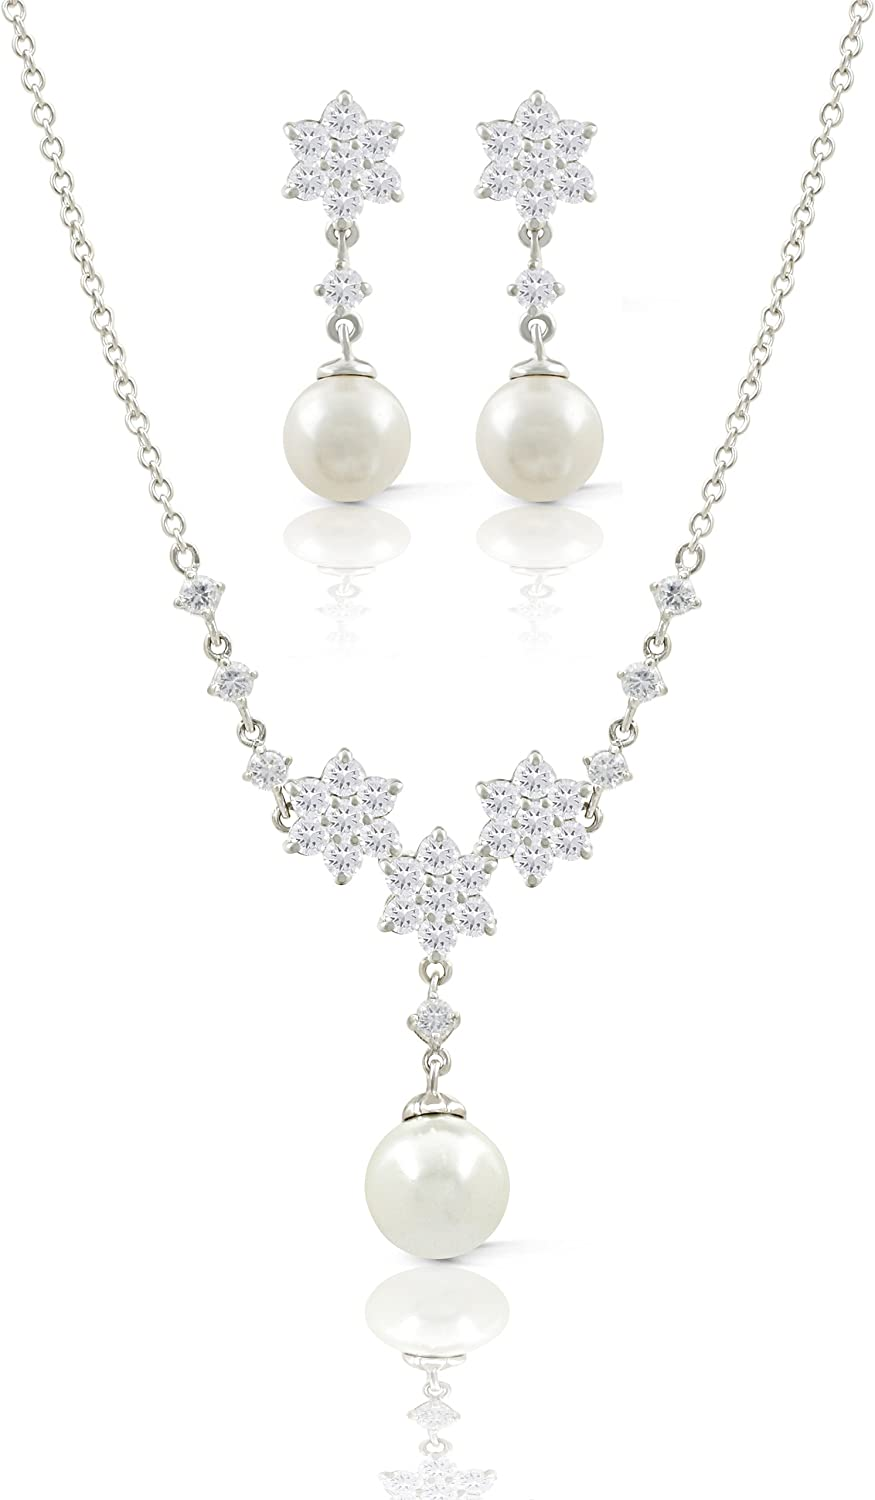 JanKuo Jewelry Rhodium Plated Bridal CZ Dangle Simulated Pearls Earrings Necklace Set, 16